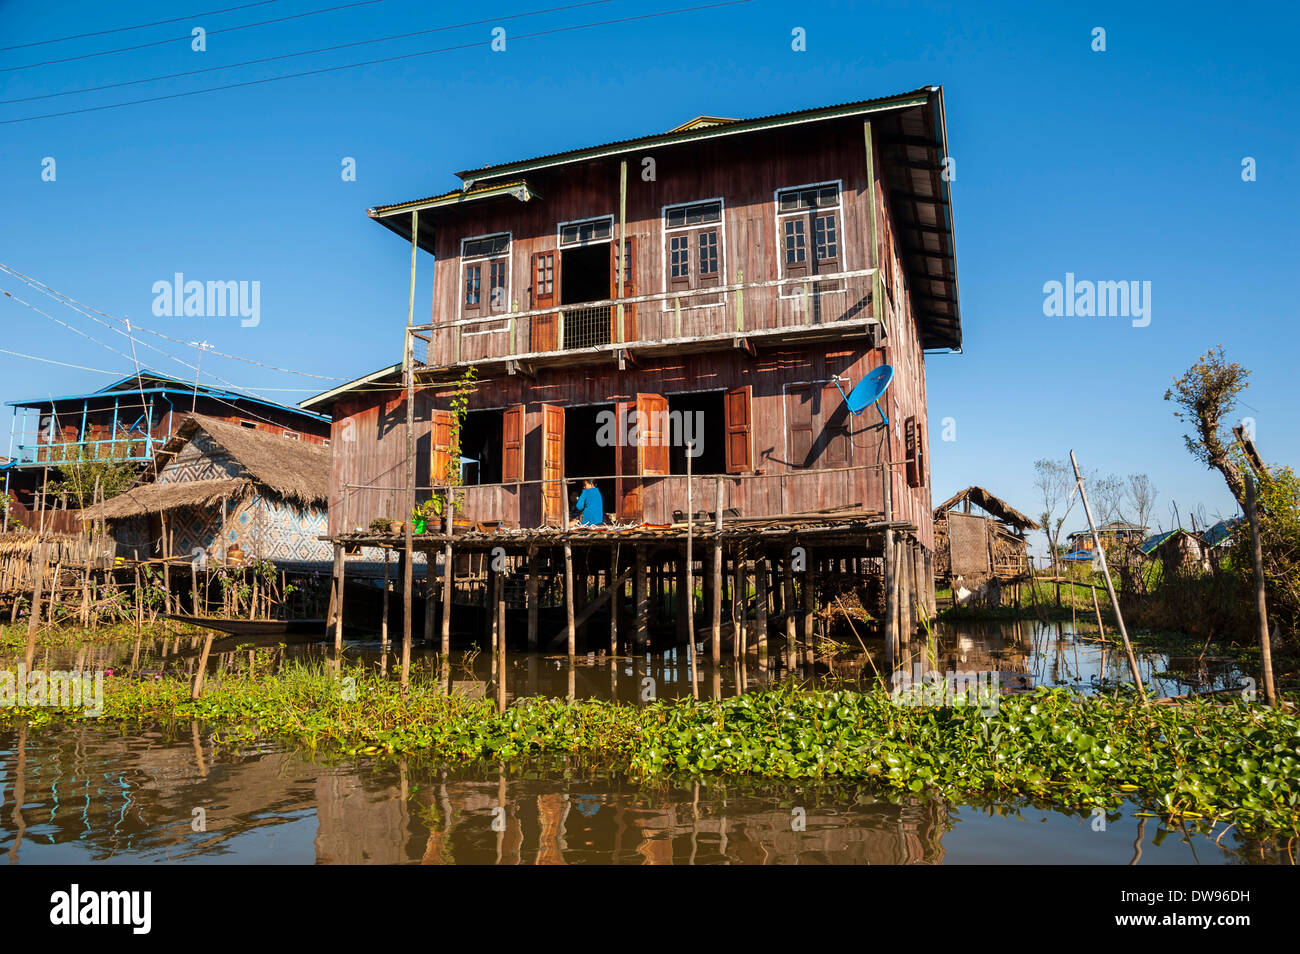 traditional house myanmar village stockfotos traditional house myanmar village bilder alamy. Black Bedroom Furniture Sets. Home Design Ideas